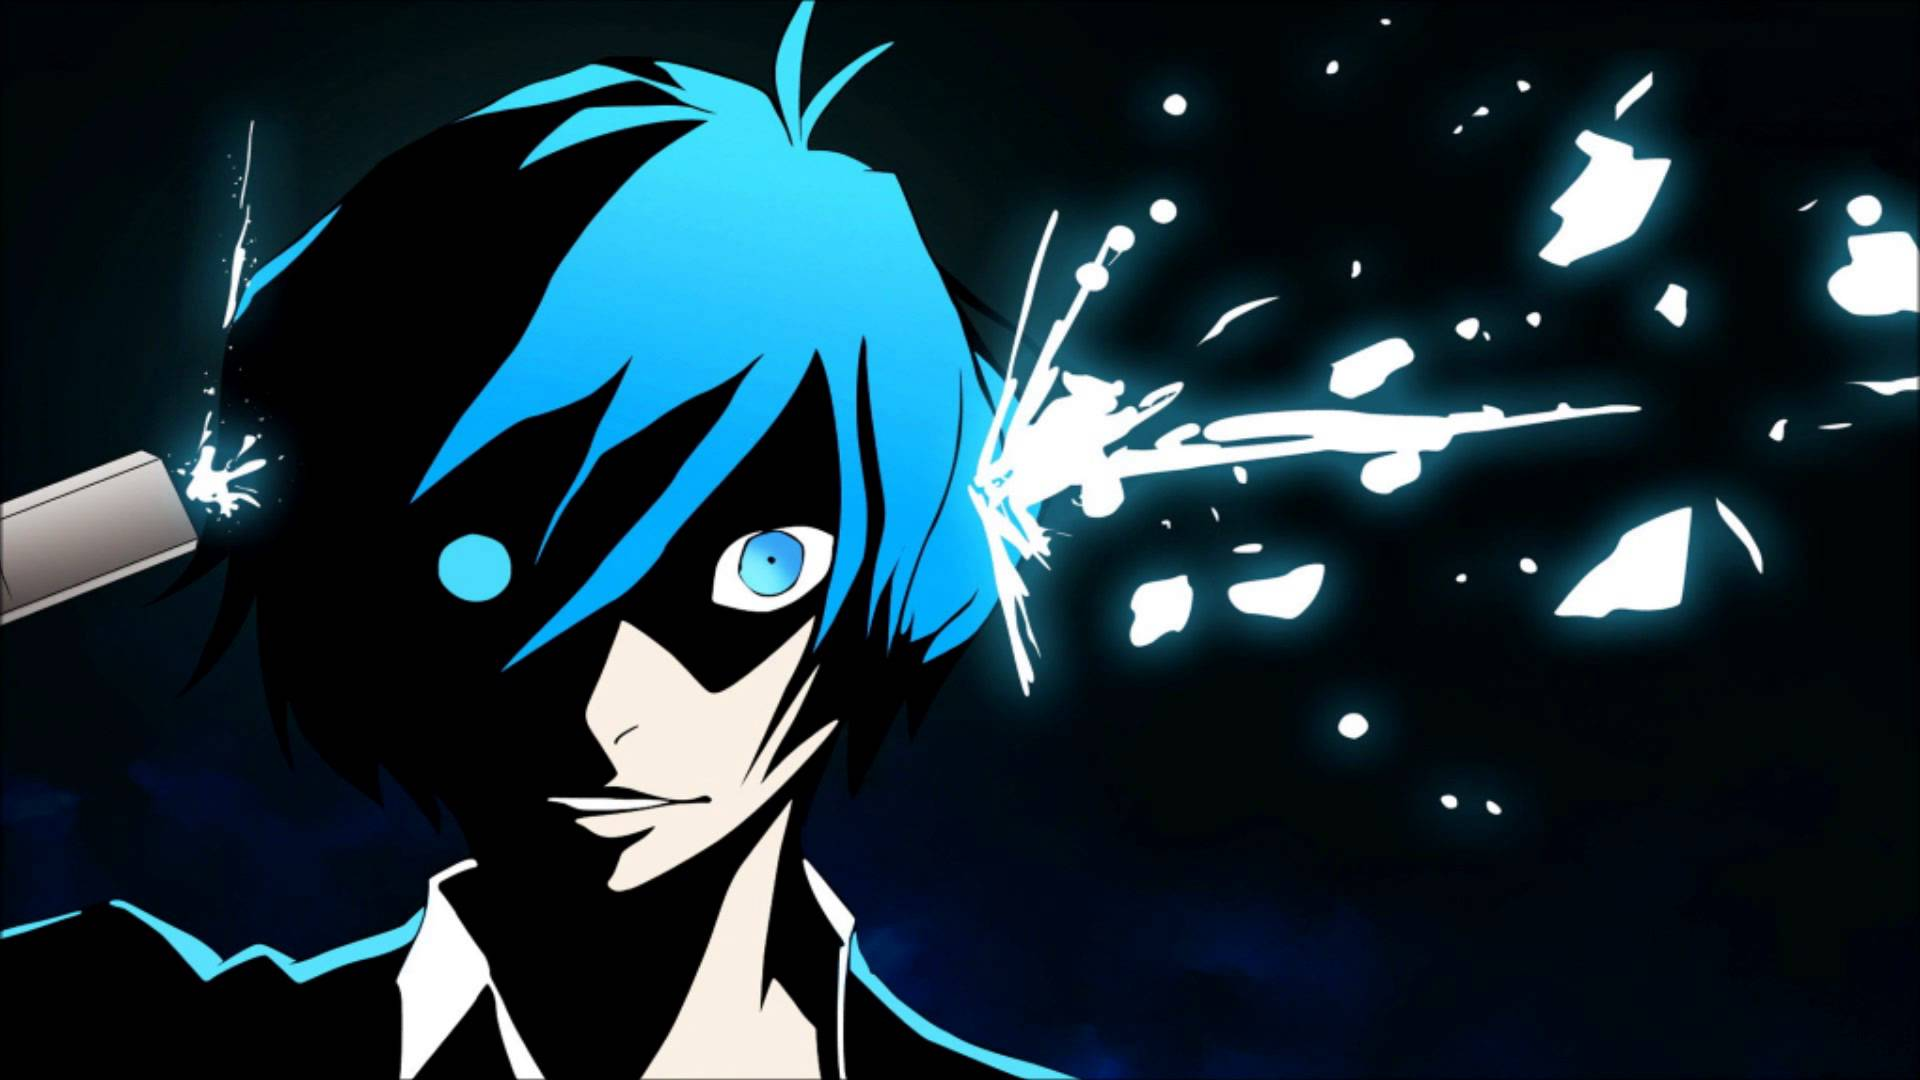 Persona 3 Pics, Video Game Collection